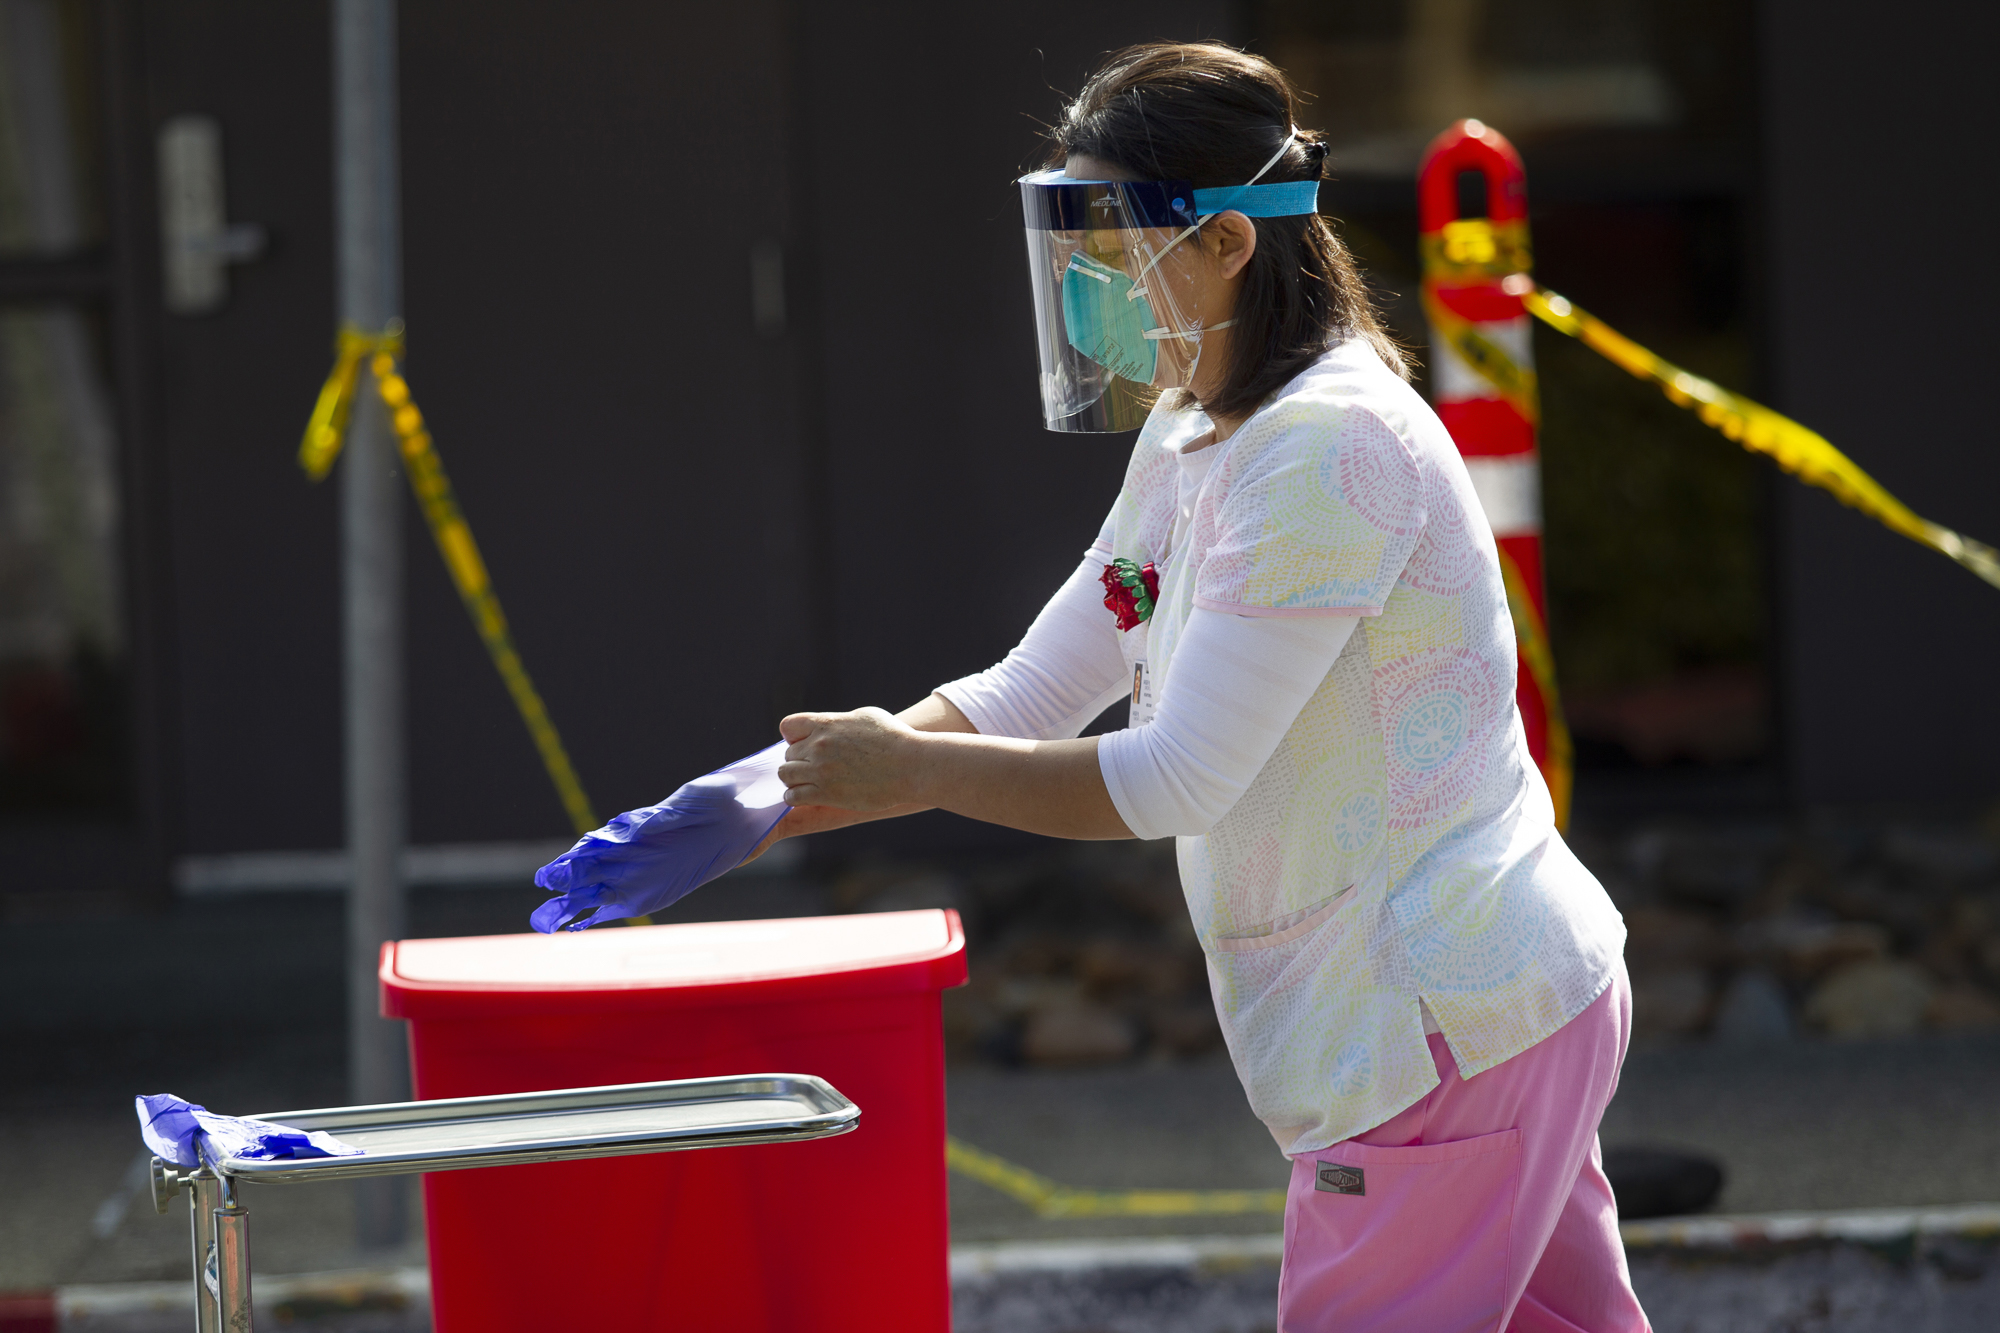 Kaiser Permanente Registered Nurse Rosa Aceves discards her gloves after administering a COVID-19 test at a drive up testing location at the Kaiser Permanente Fremont Medical Center in Fremont on March 11, 2020.